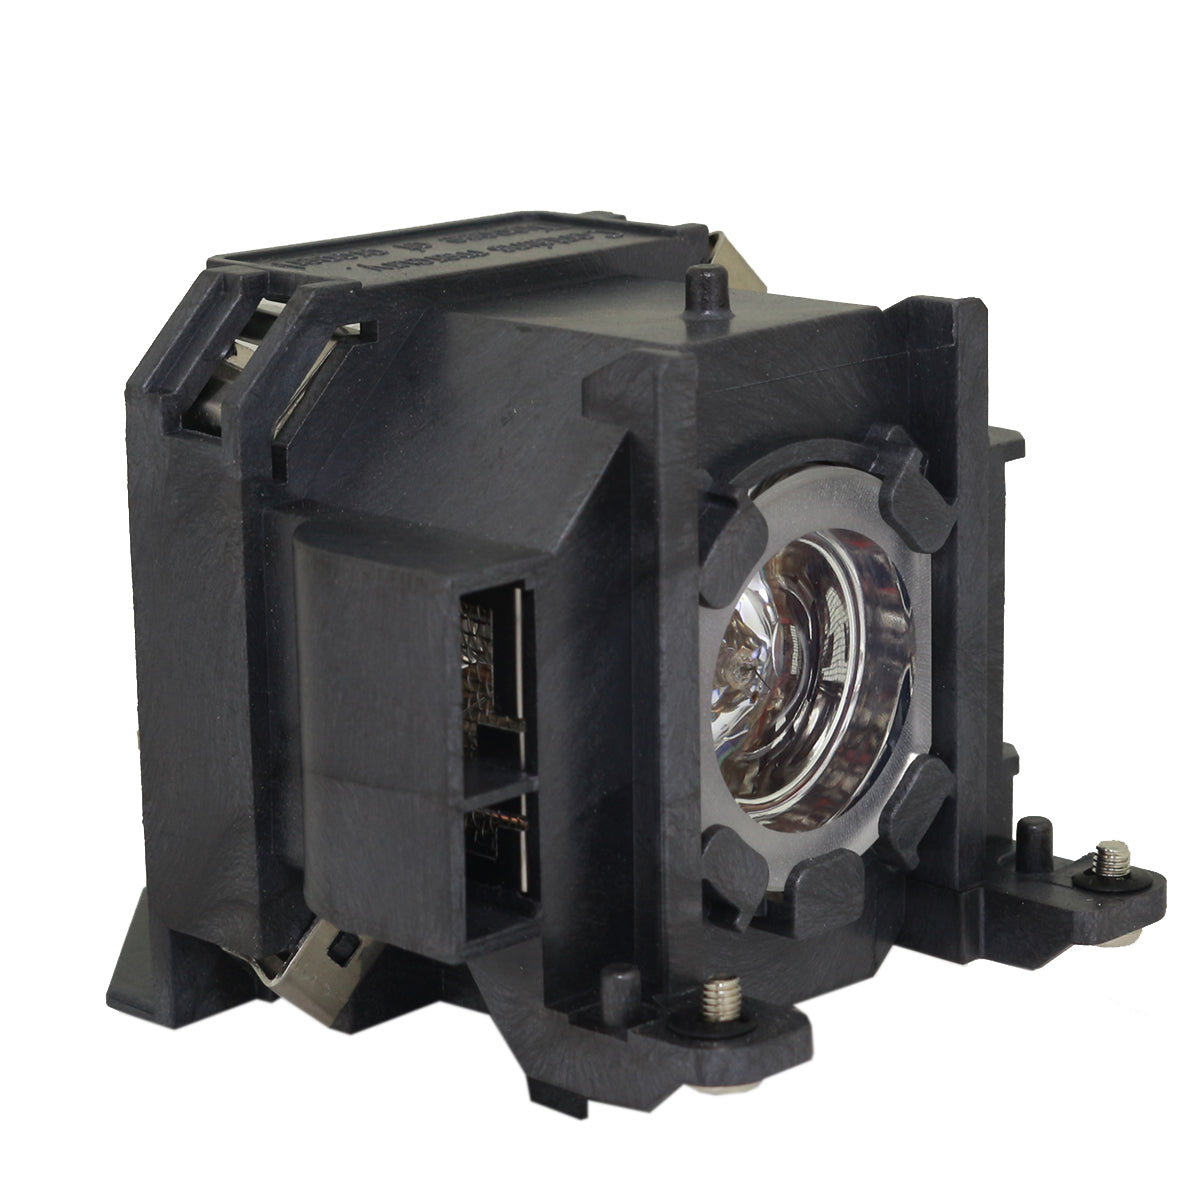 Epson ELPLP38 Philips Projector Lamp Module